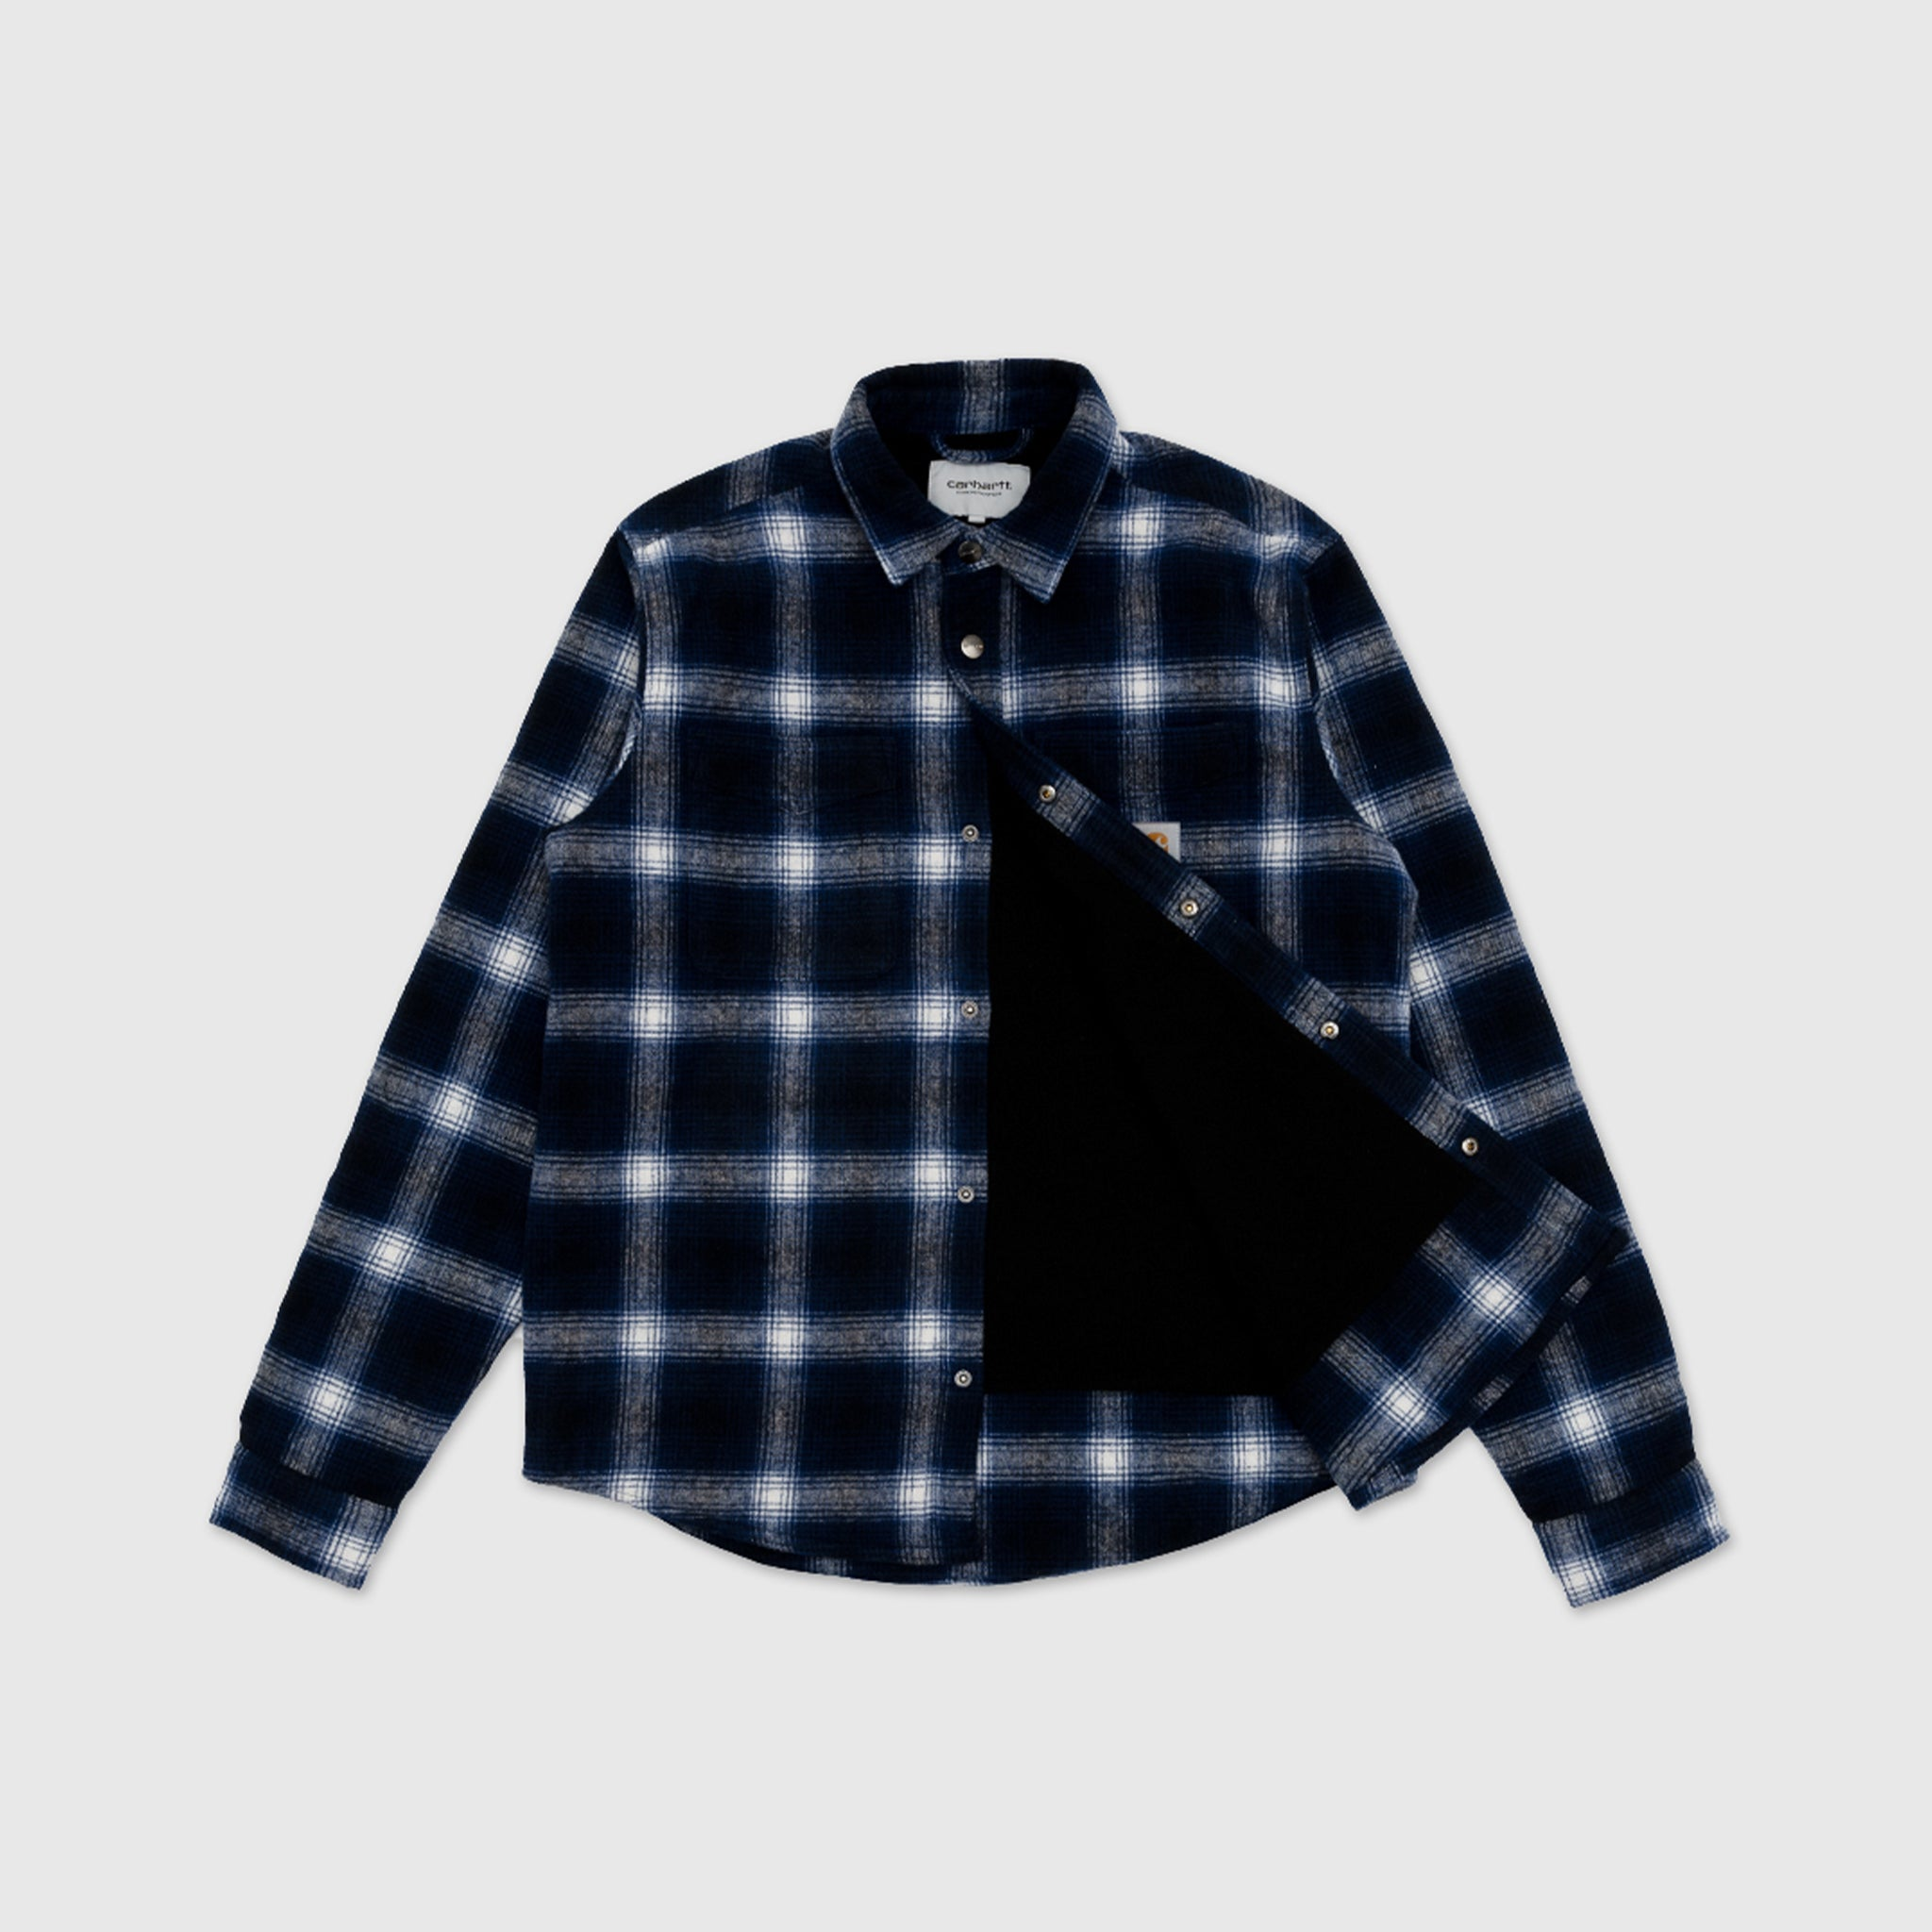 CARHARTT WIP LASHLEY SHIRT JACKET